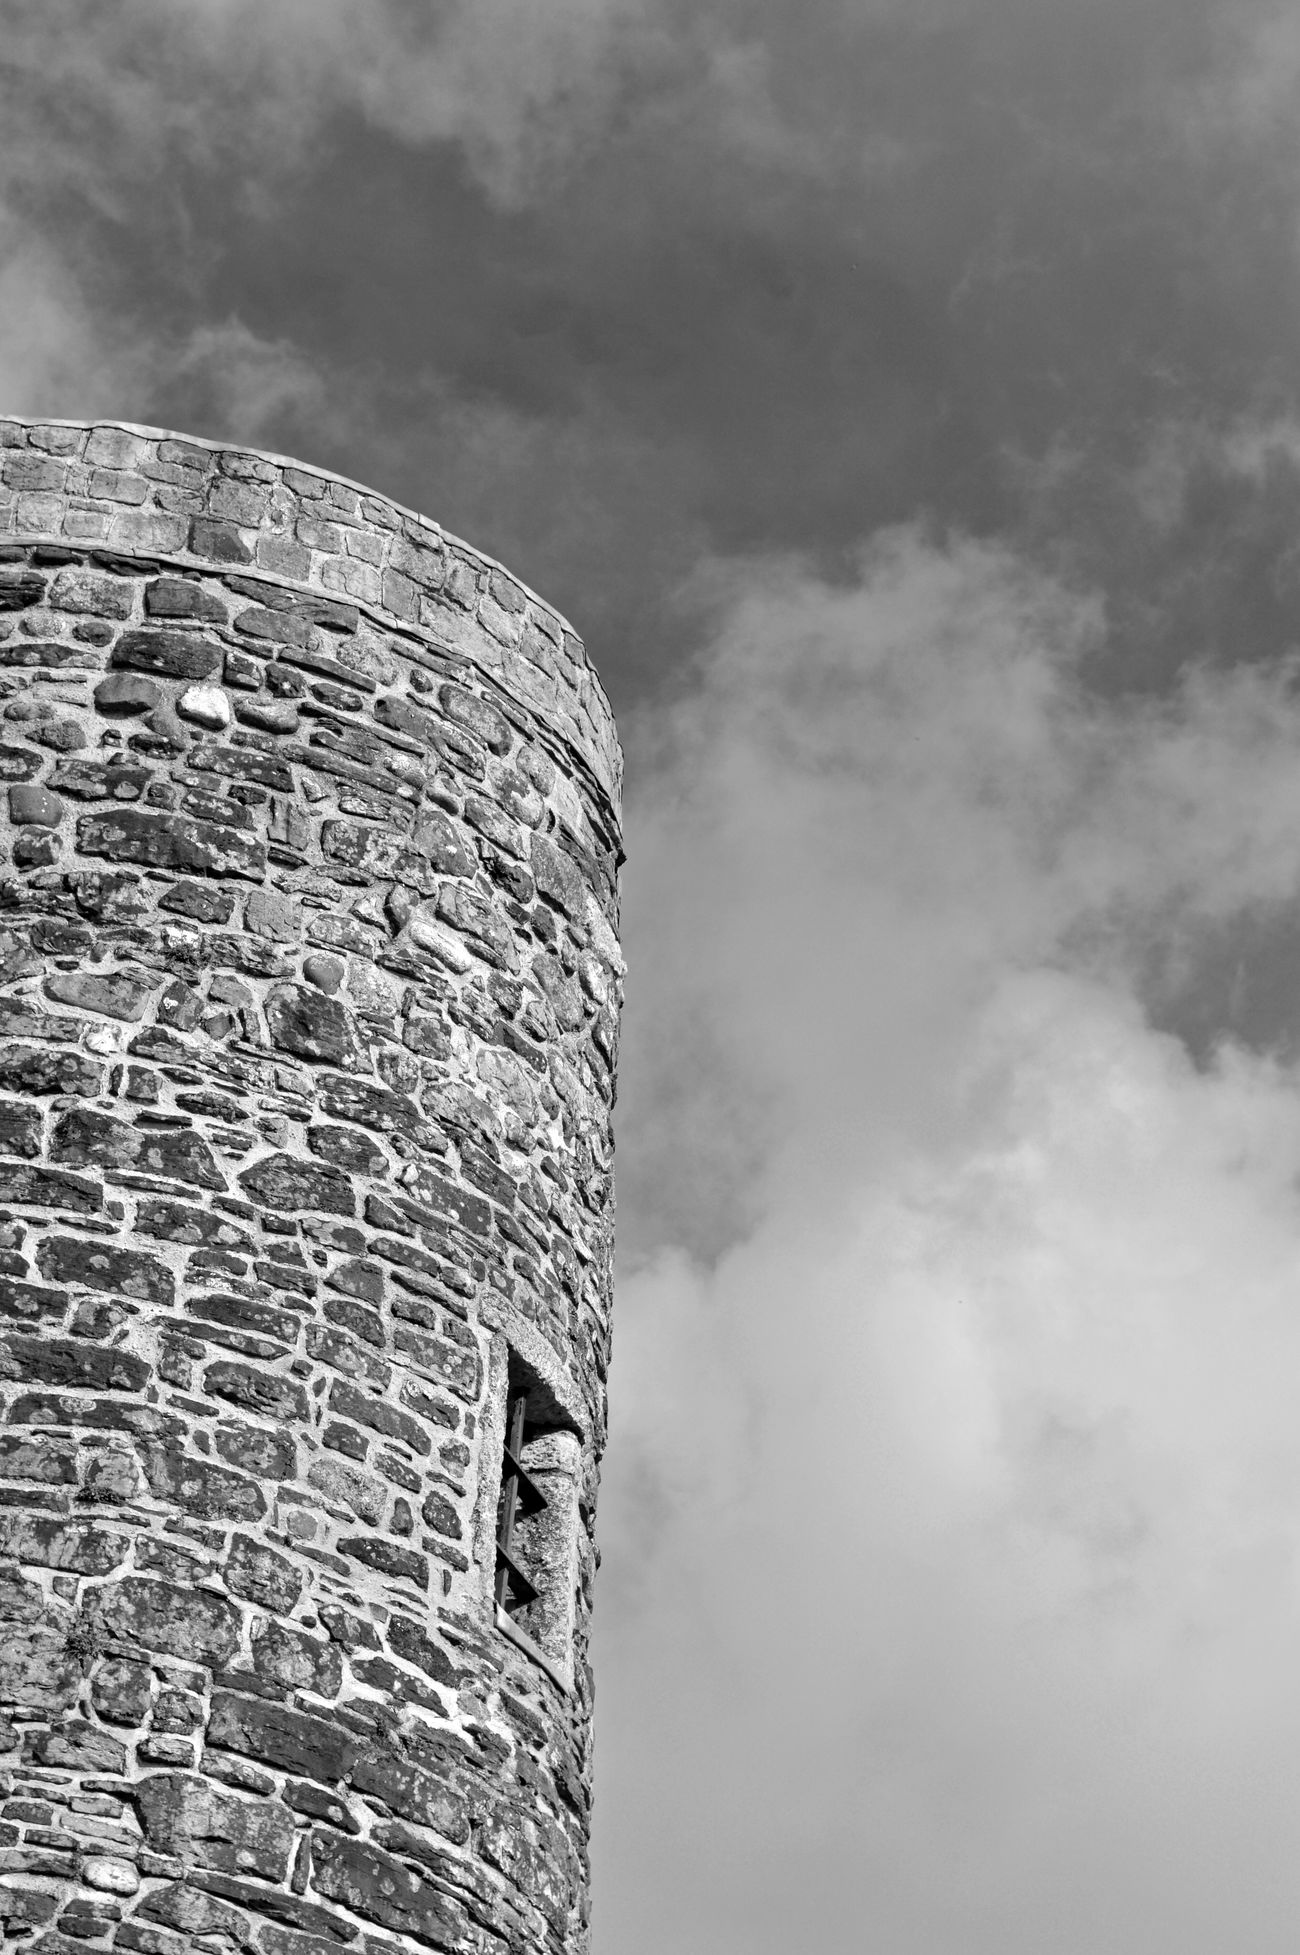 Ypres Tower (Rye Castle) Built Structure Architecture Sky Building Exterior Cloud - Sky Outdoors Blackandwhite Black And White Black & White Blackandwhite Photography Castle Architecture Architecture_collection No People Sky And Clouds Sky_collection East Sussex England Nikon Nikonphotography